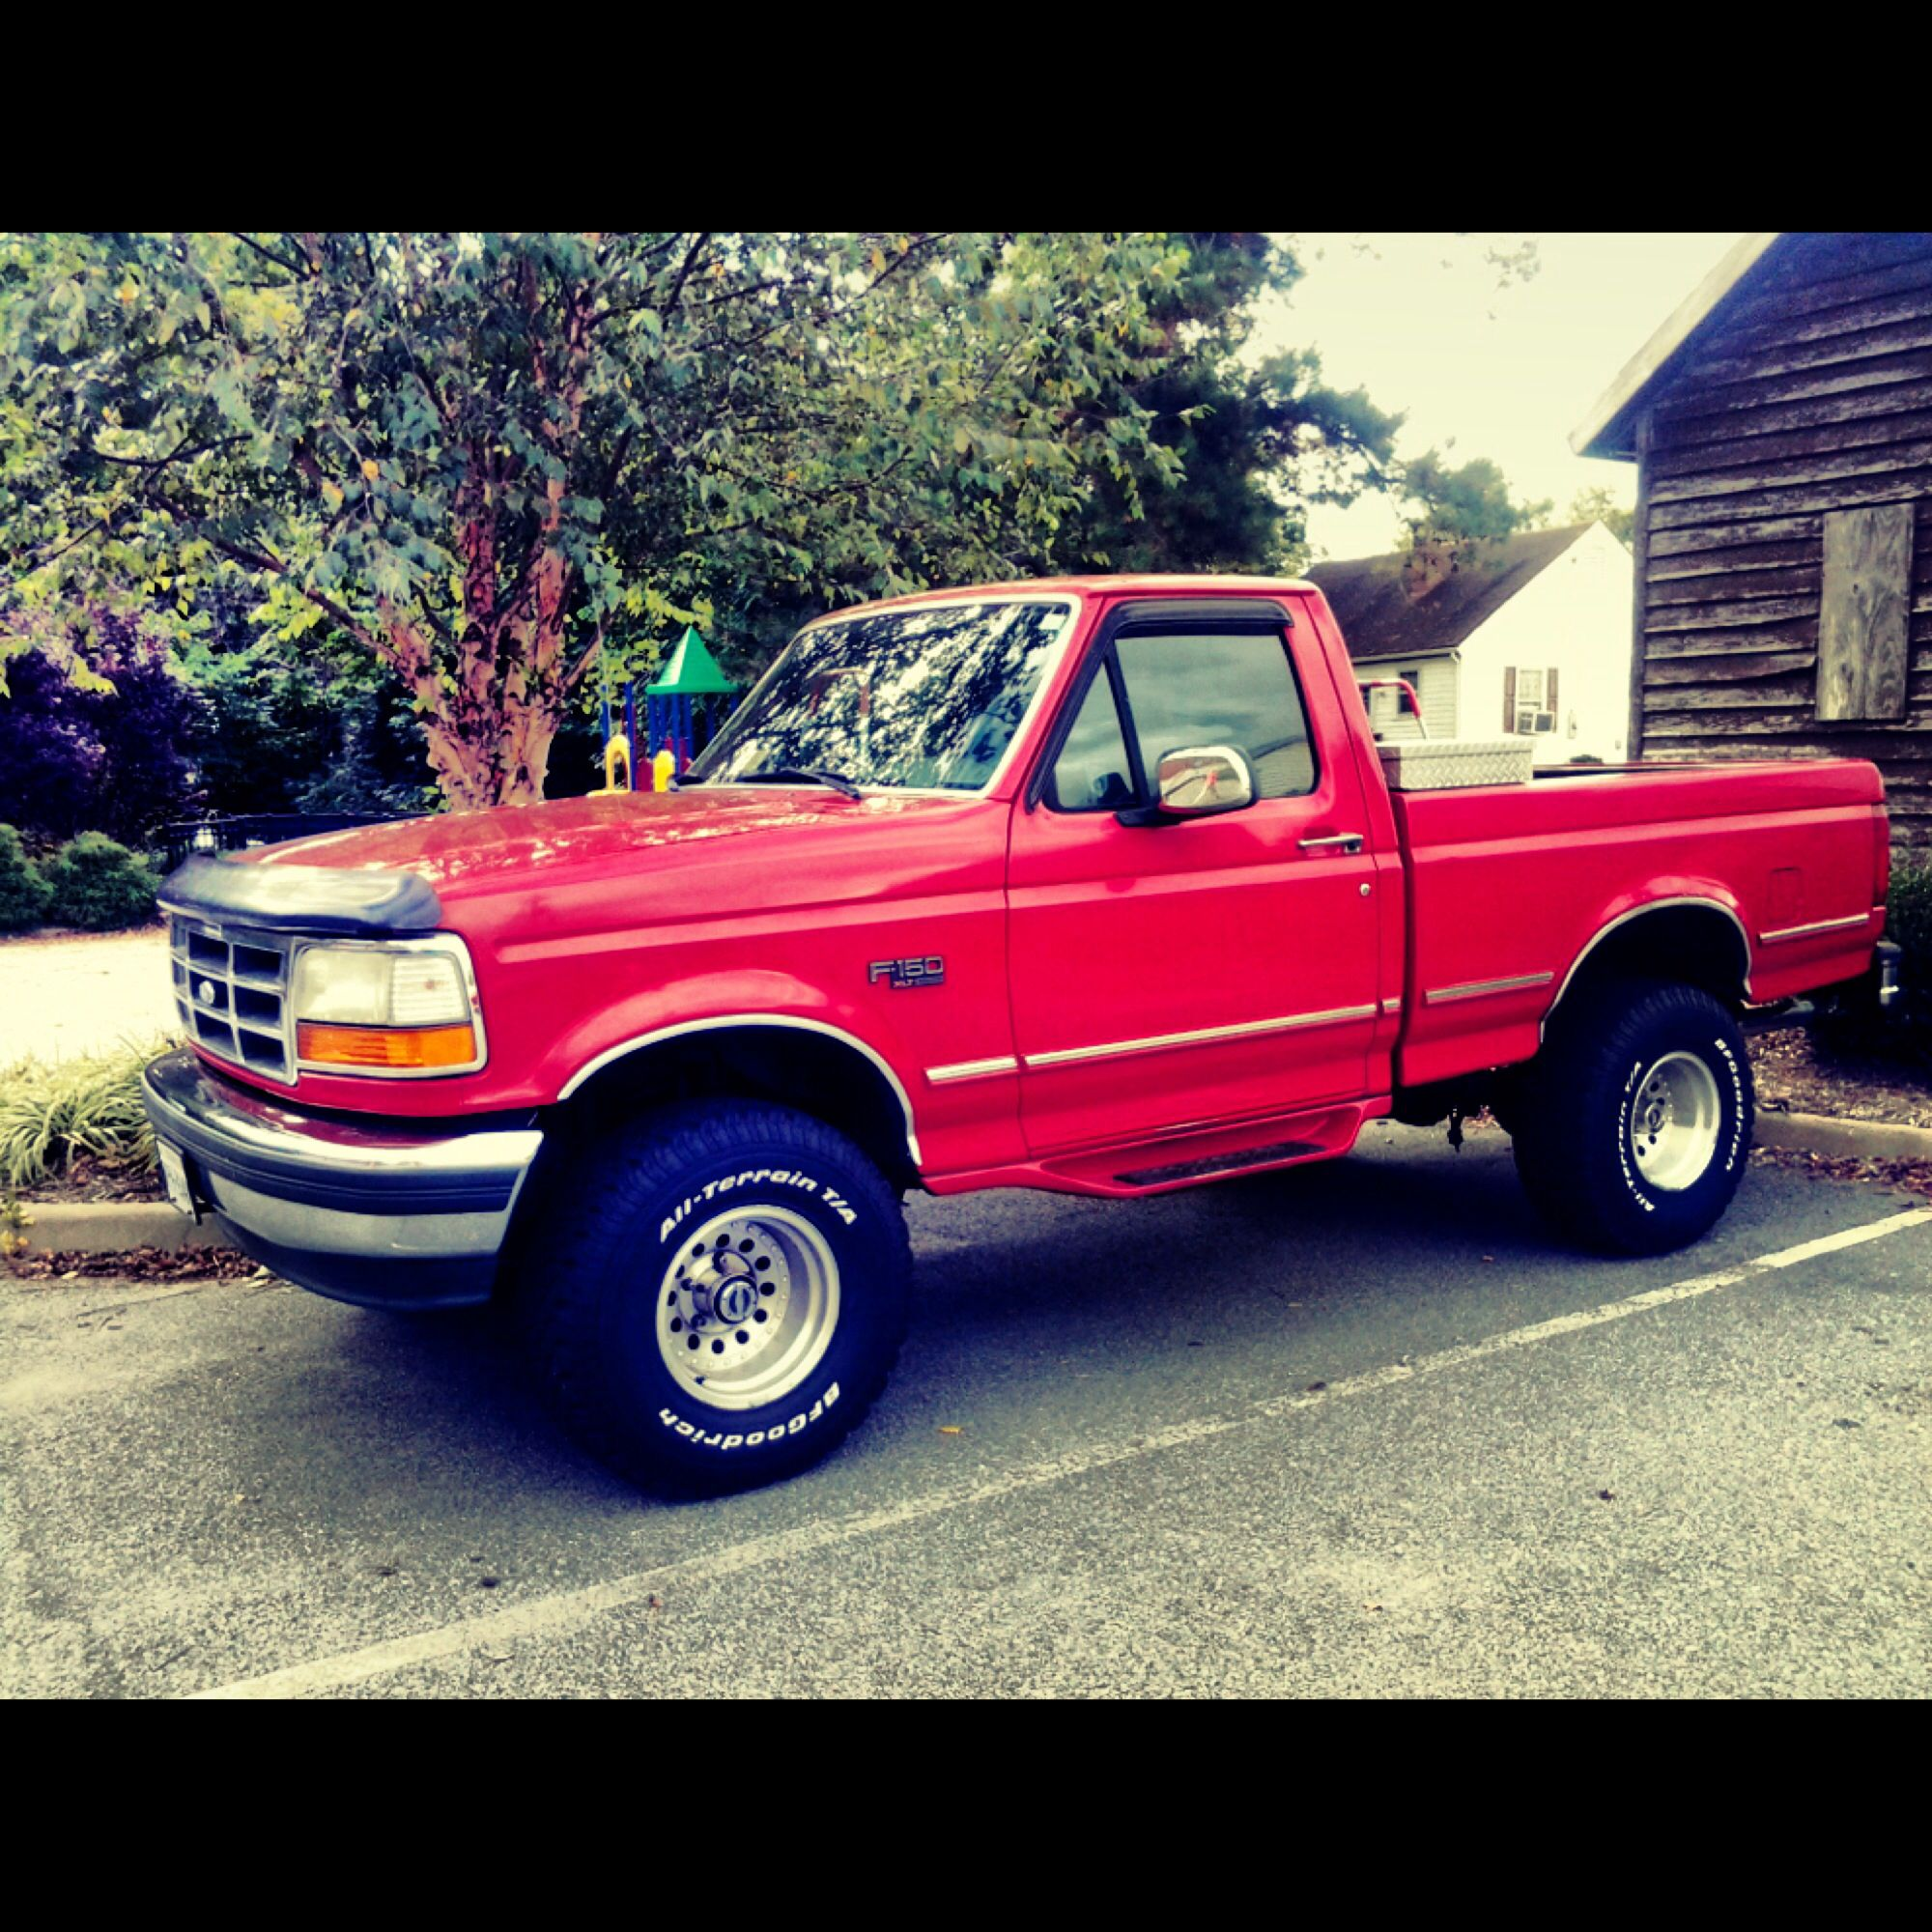 hight resolution of my baby for life 1995 ford f150 4x4 on 33s